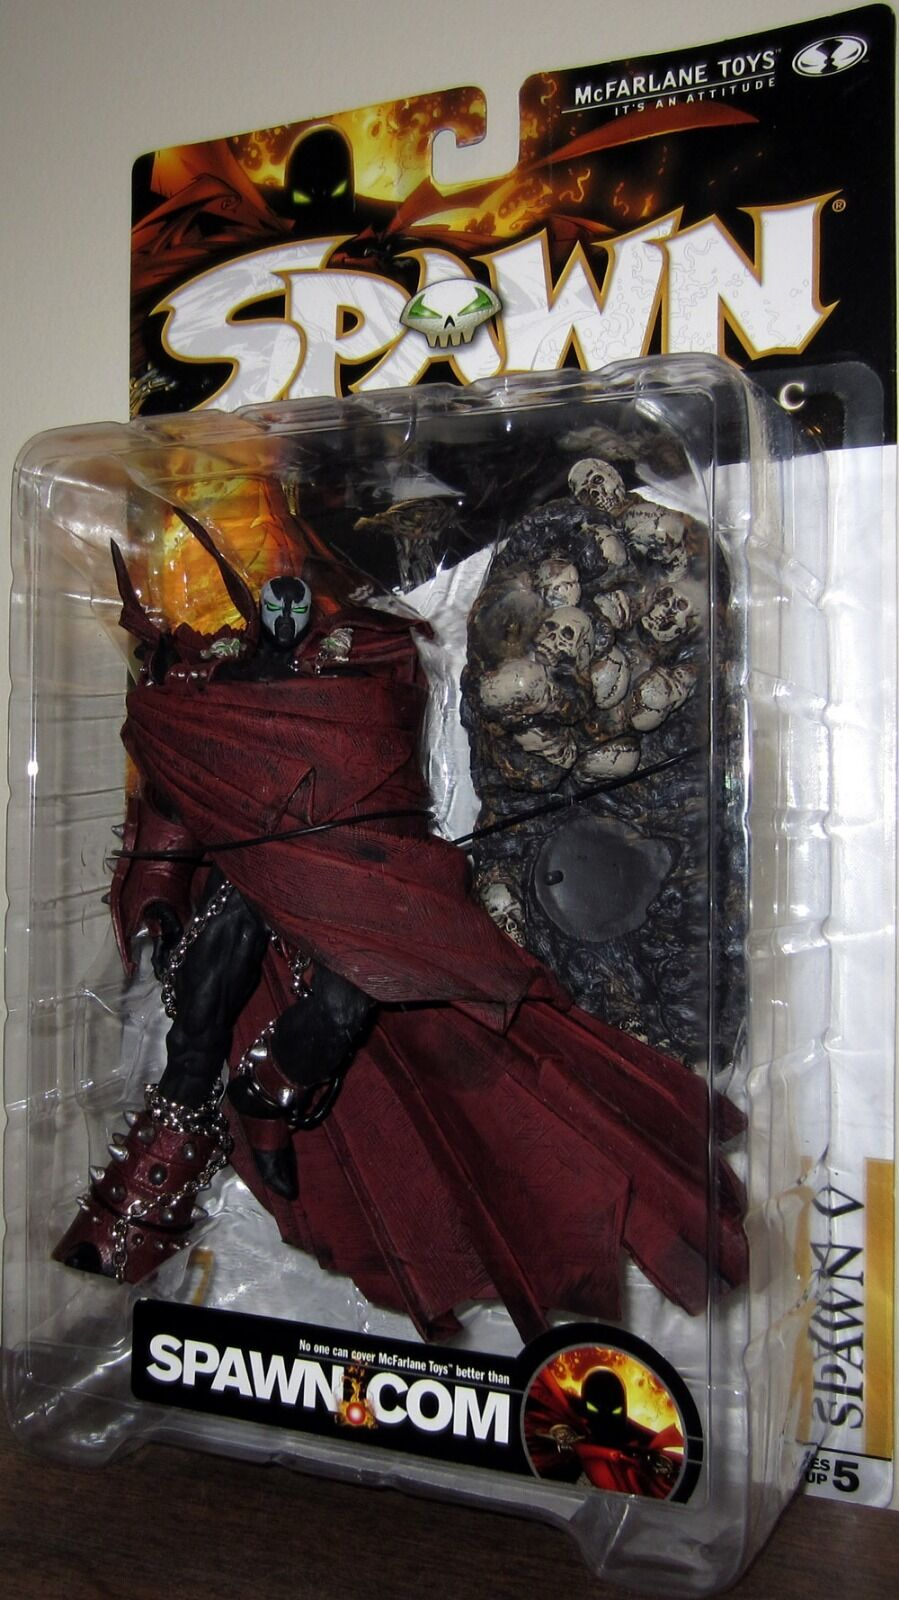 SPAWN V SERIES 17, CLASSIC ACTION FIGURE MCFARLANE TOYS 2000